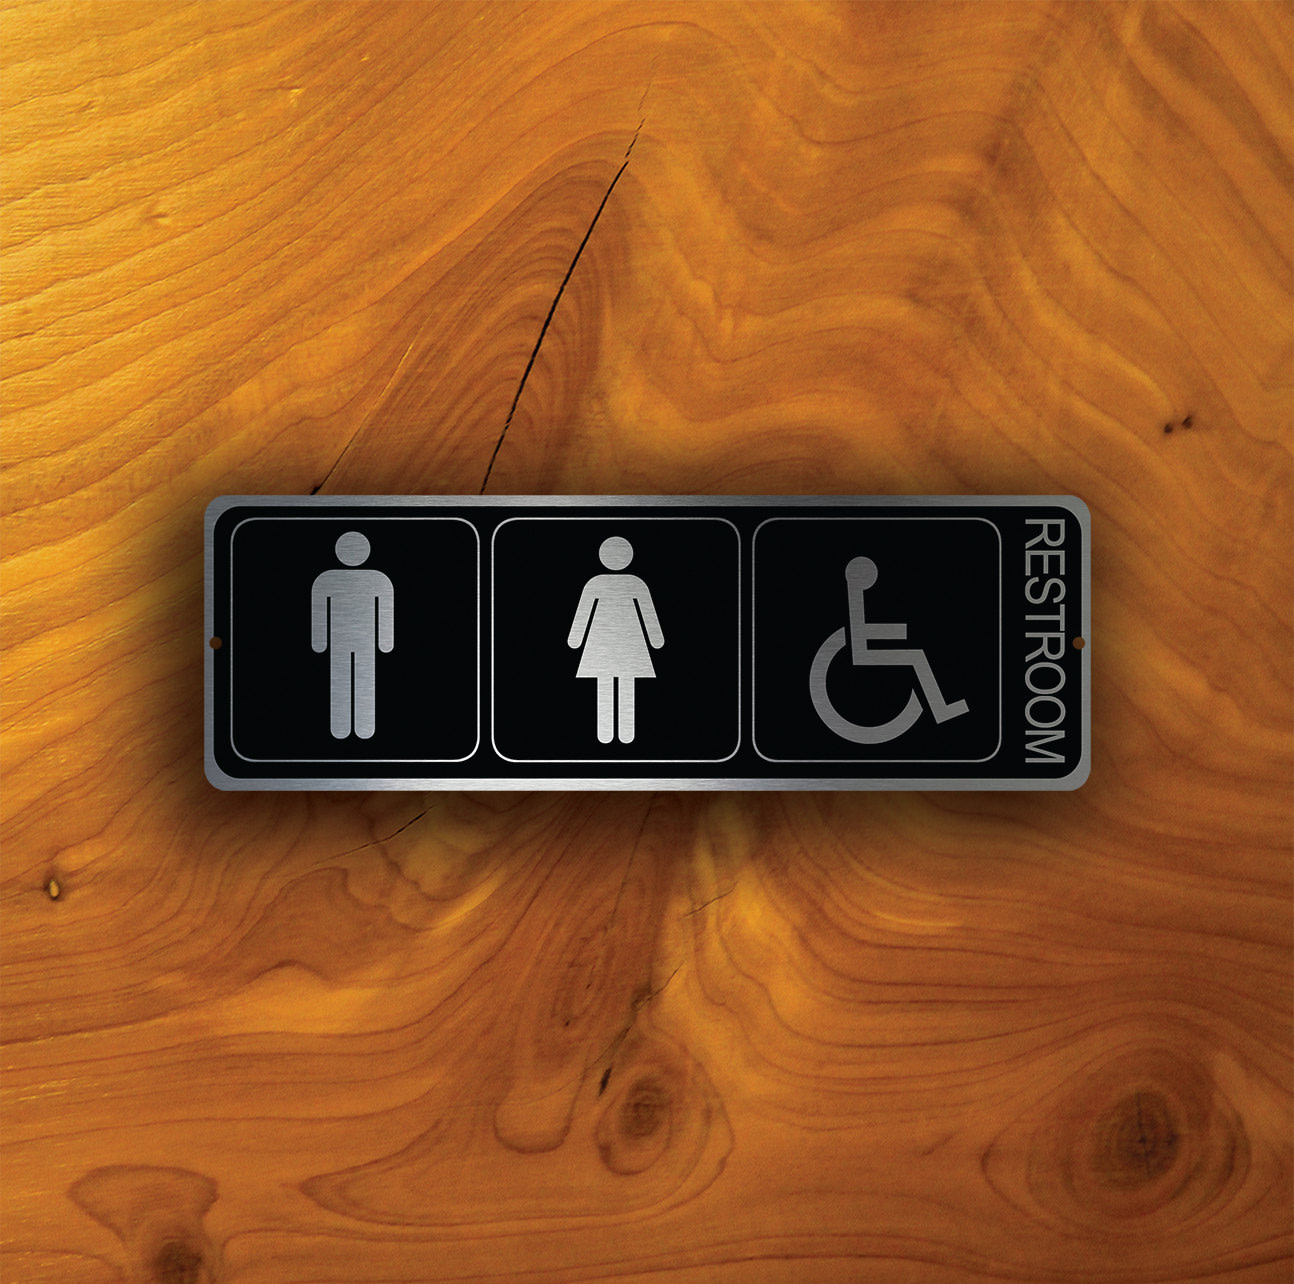 UNISEX ACCESSIBLE RESTROOM Sign